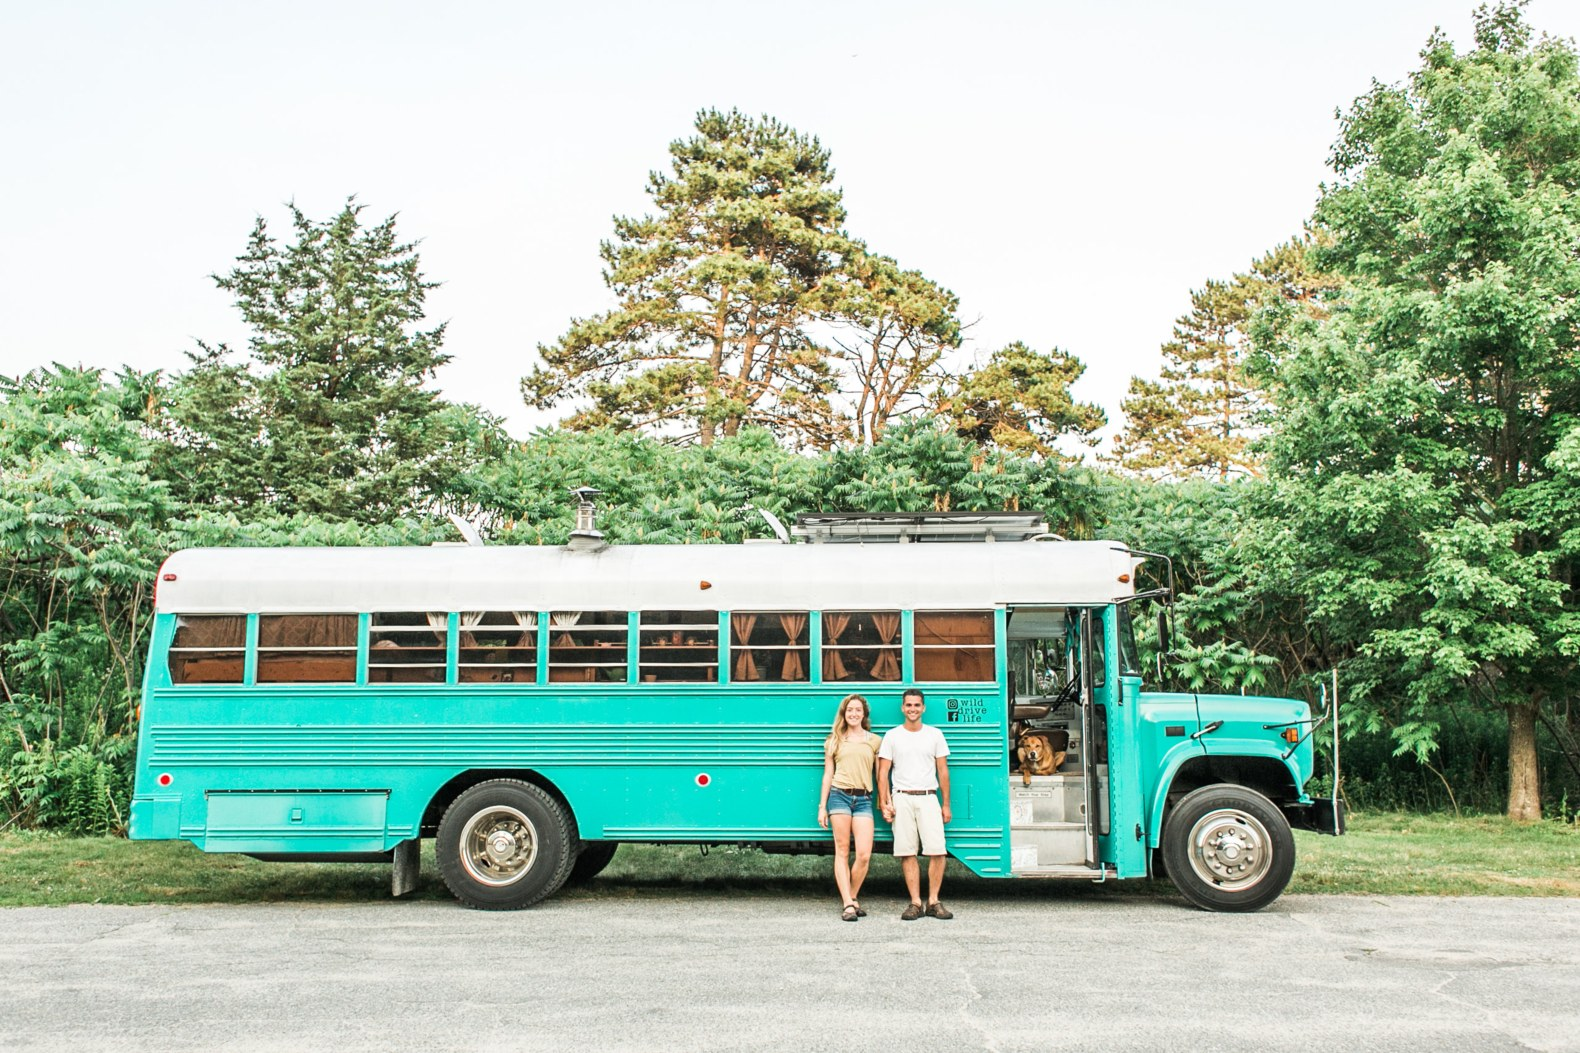 A couple converts an old prison bus into a criminally beautiful tiny home